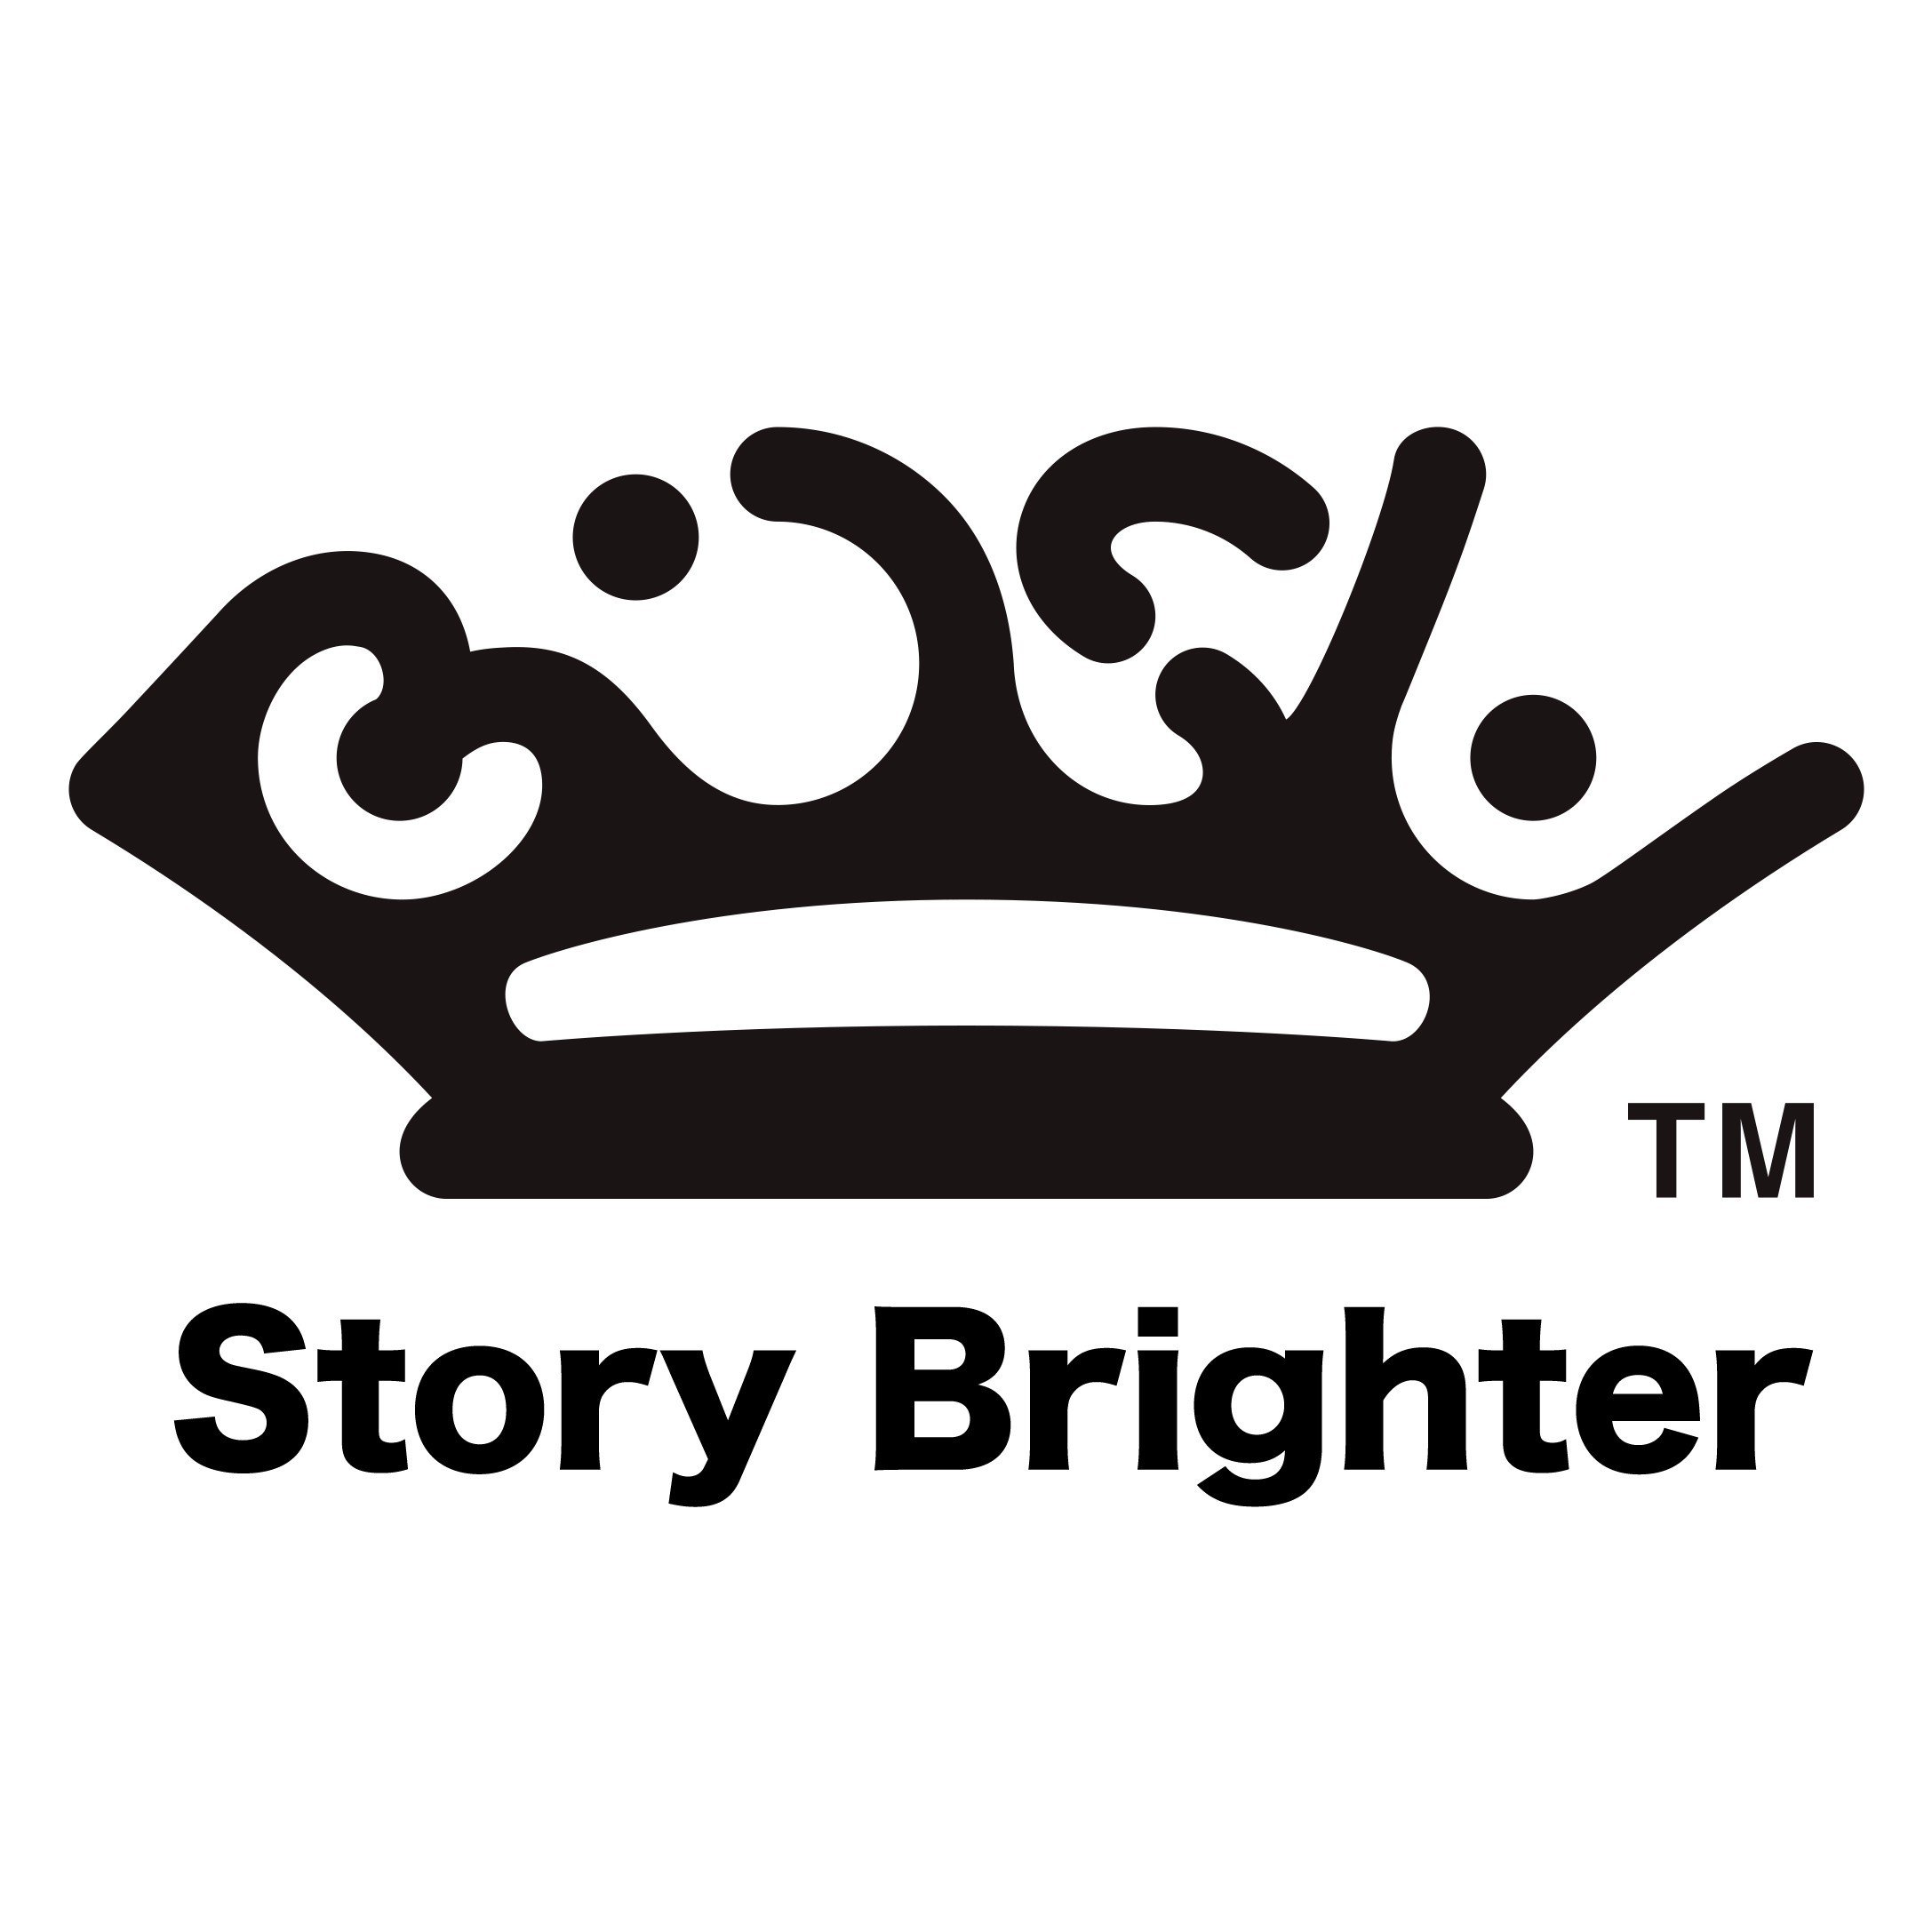 Story Brighter